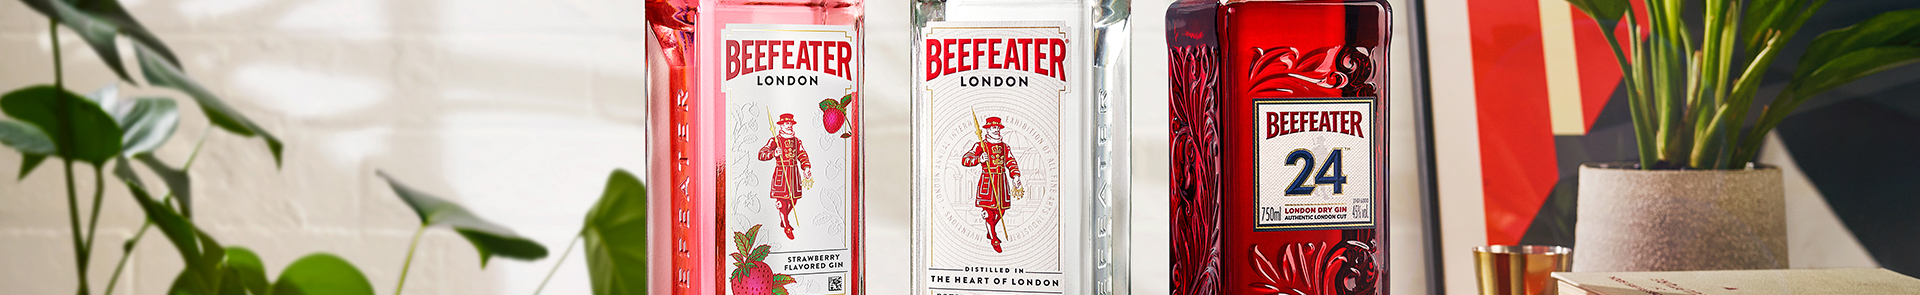 Beefeater Pink, London Dry and Beefeater 24